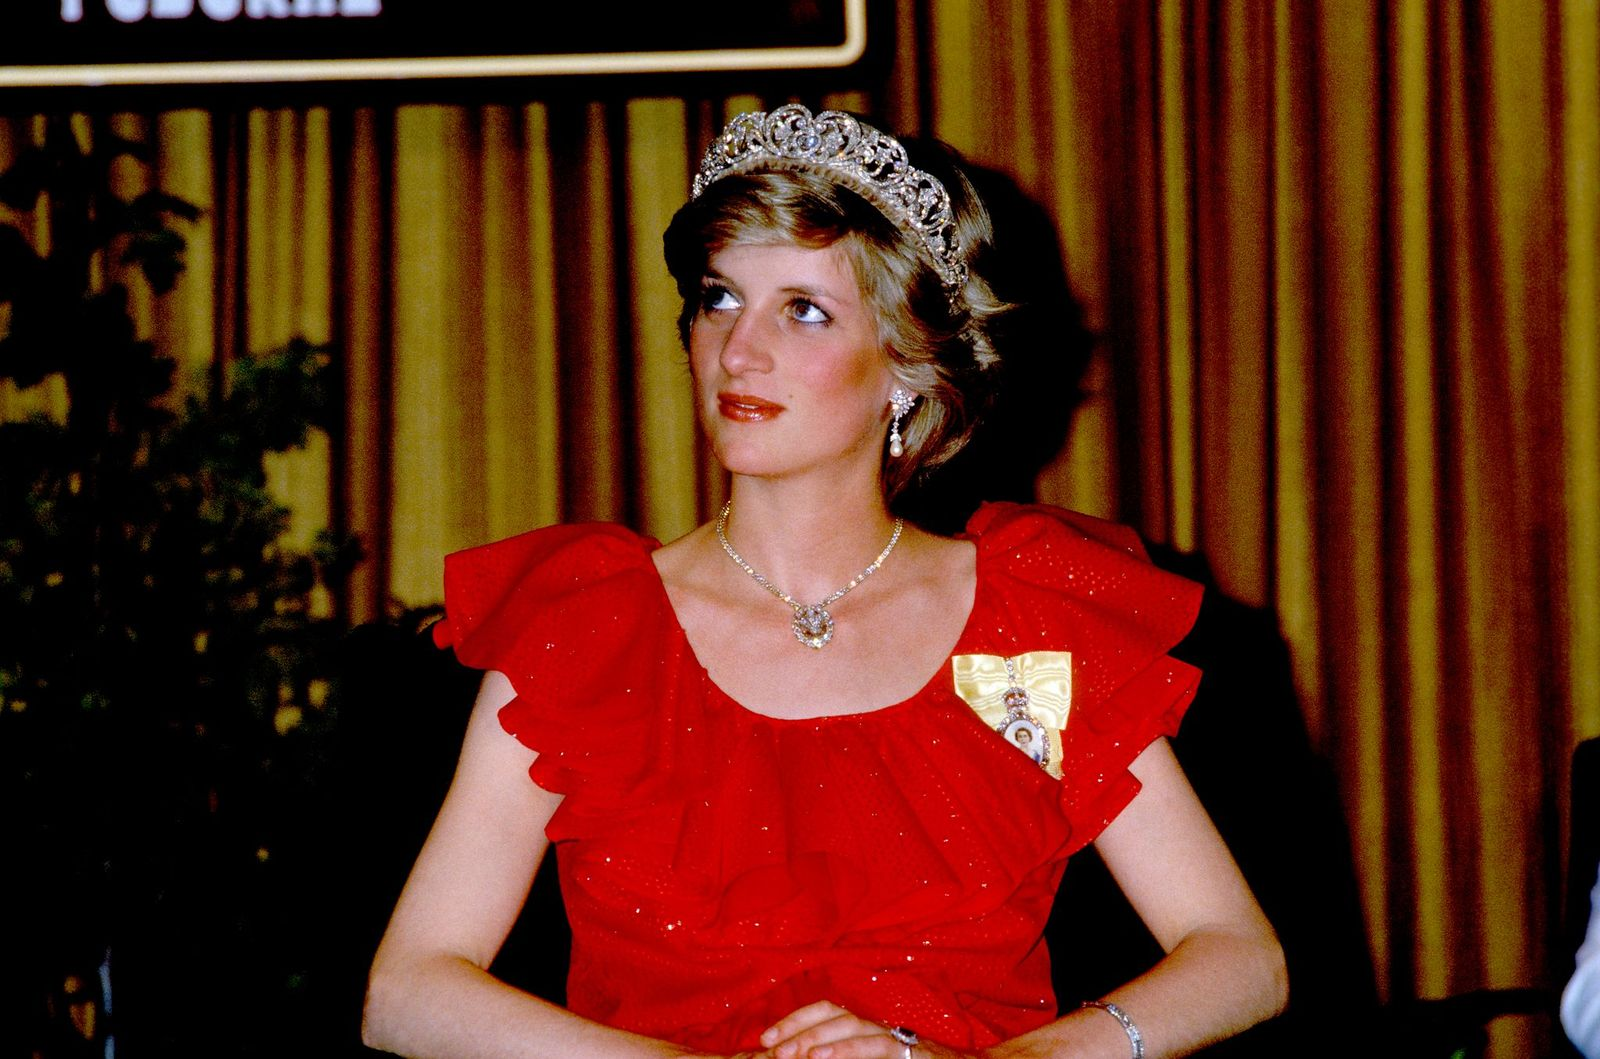 Princess Diana in Tasmania for the State Reception in Hobart, 30th March 1983 | Photo: Getty Images